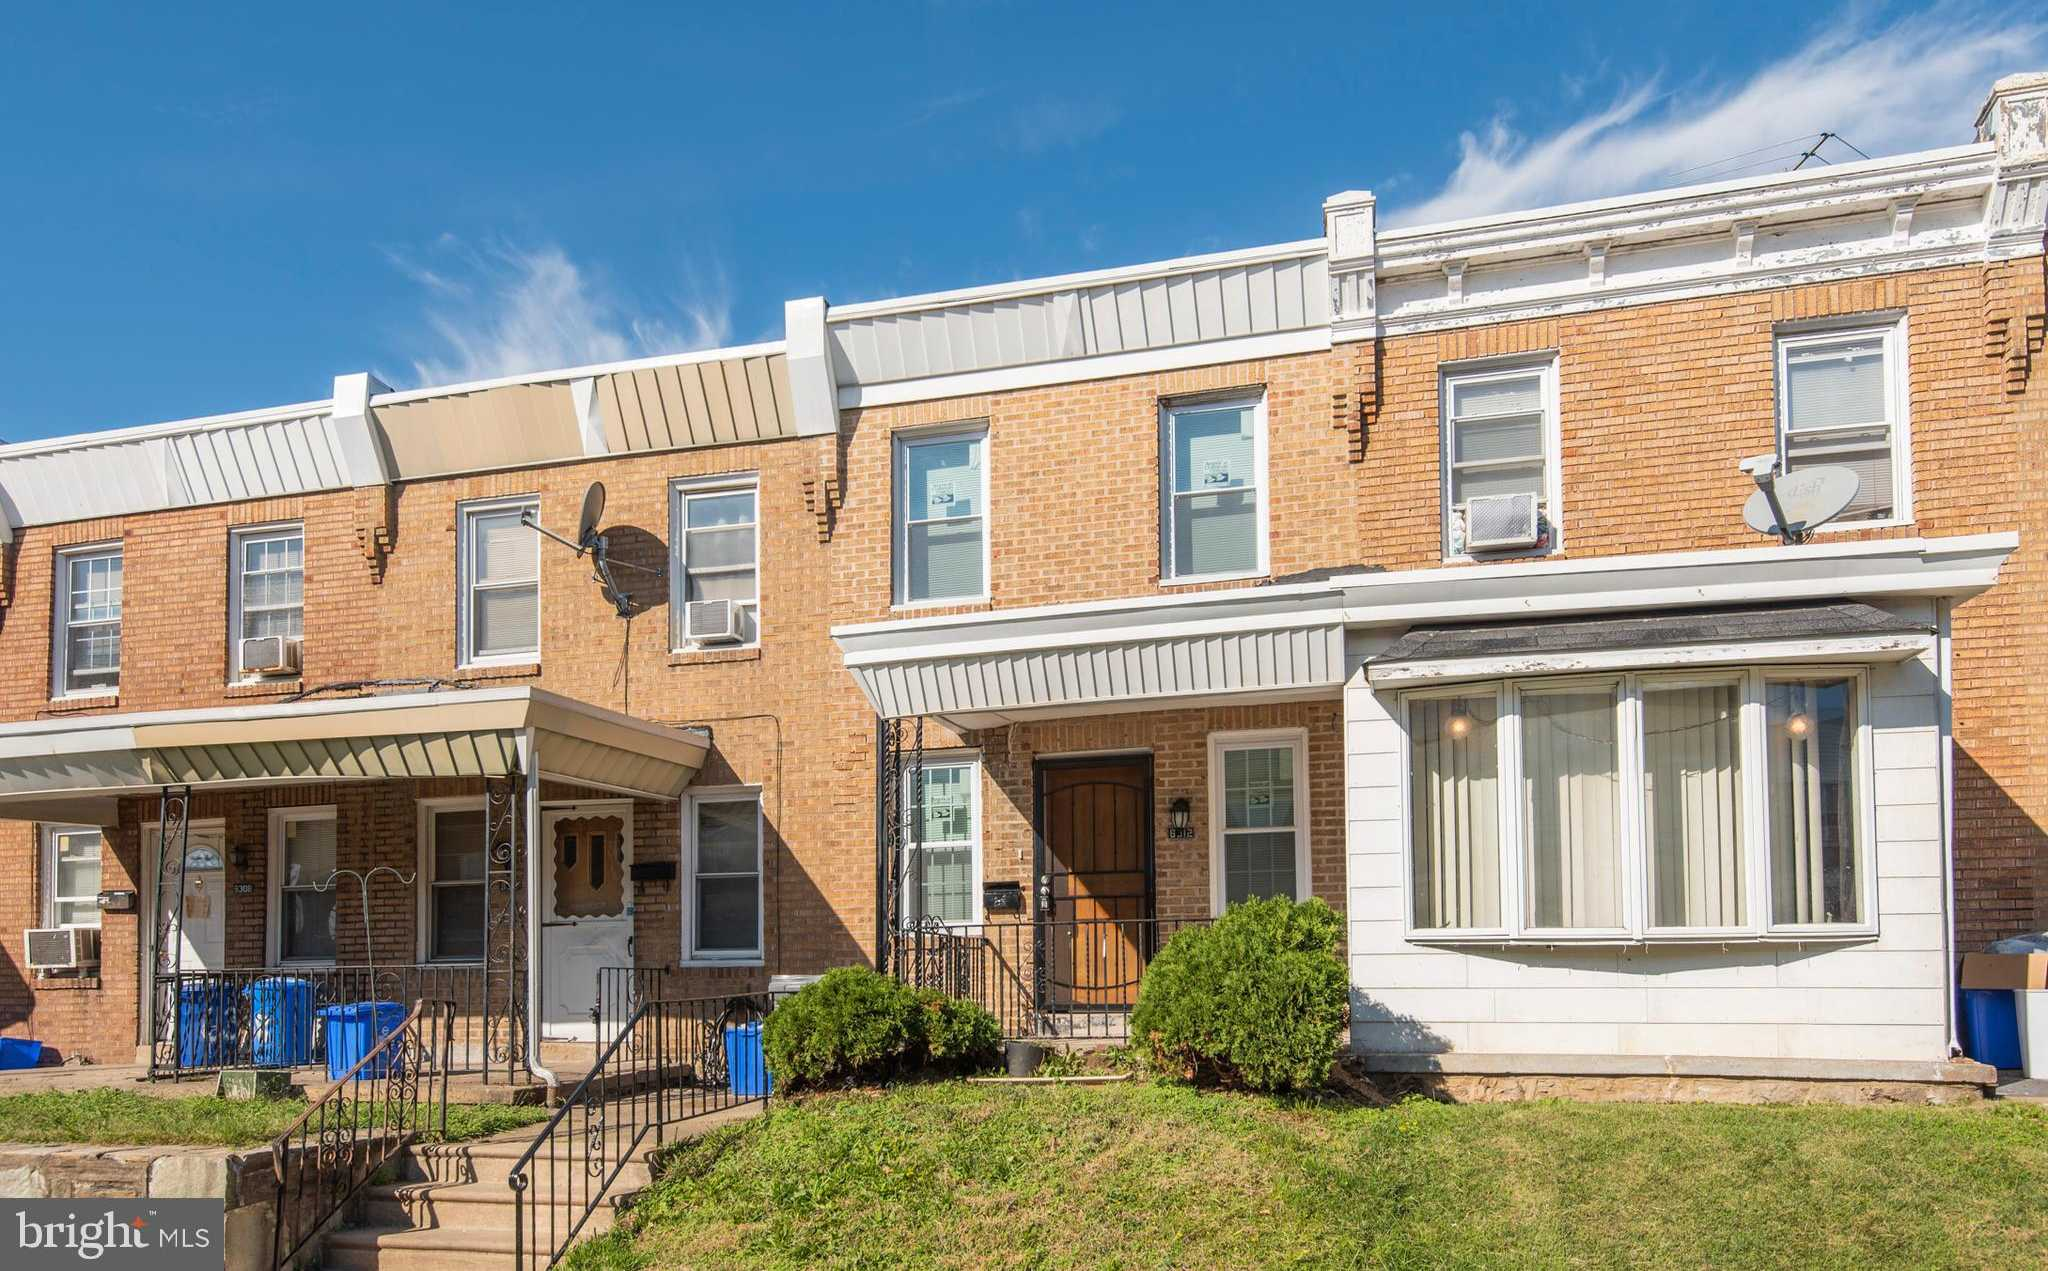 $180,000 - 3Br/2Ba -  for Sale in Tacony, Philadelphia